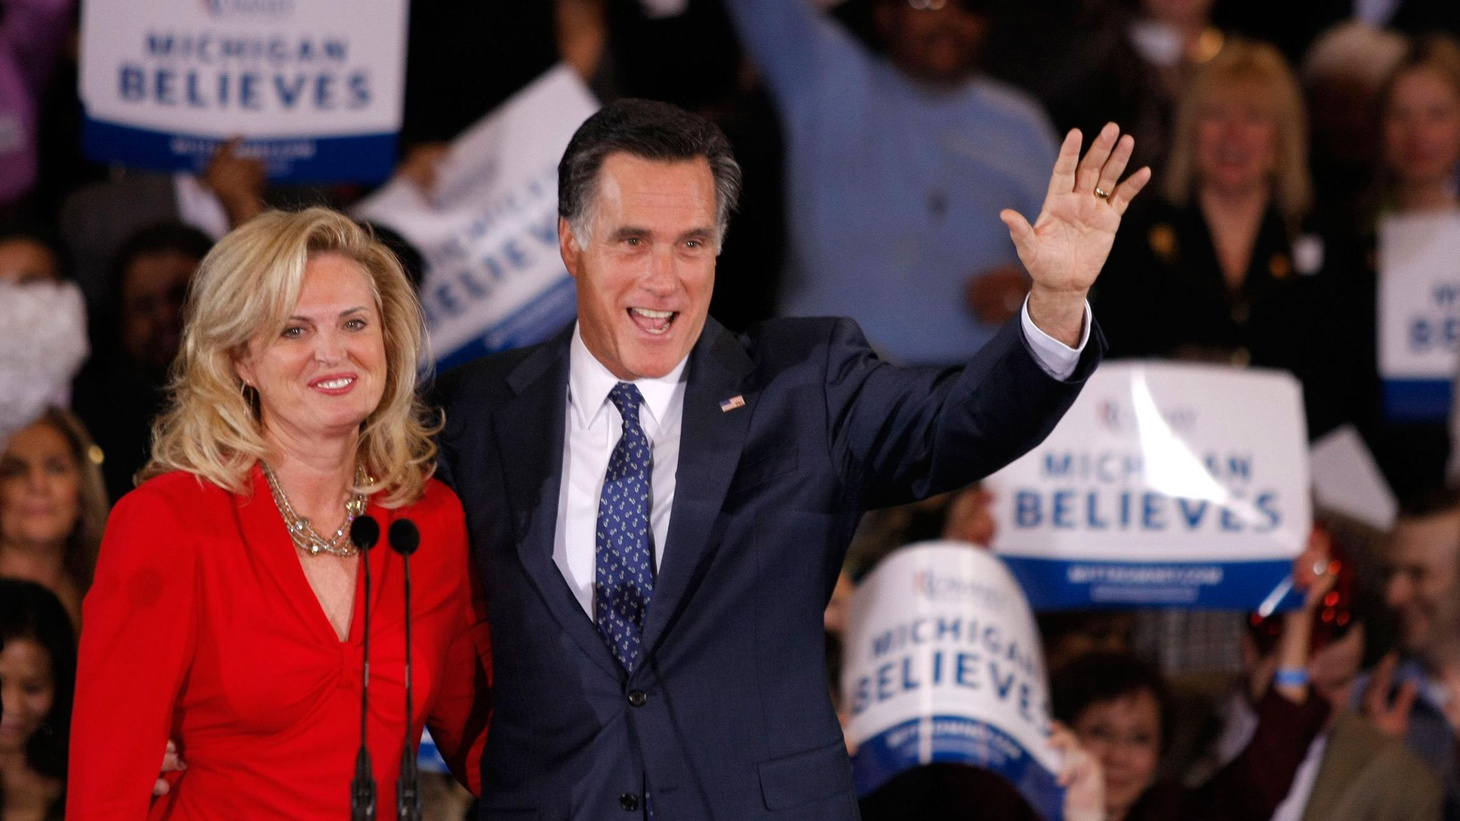 Romney won his home state's vote by 3 points, but Santorum may have won the same number of delegates. Who's got the momentum for Super Tuesday next week in 10 states?